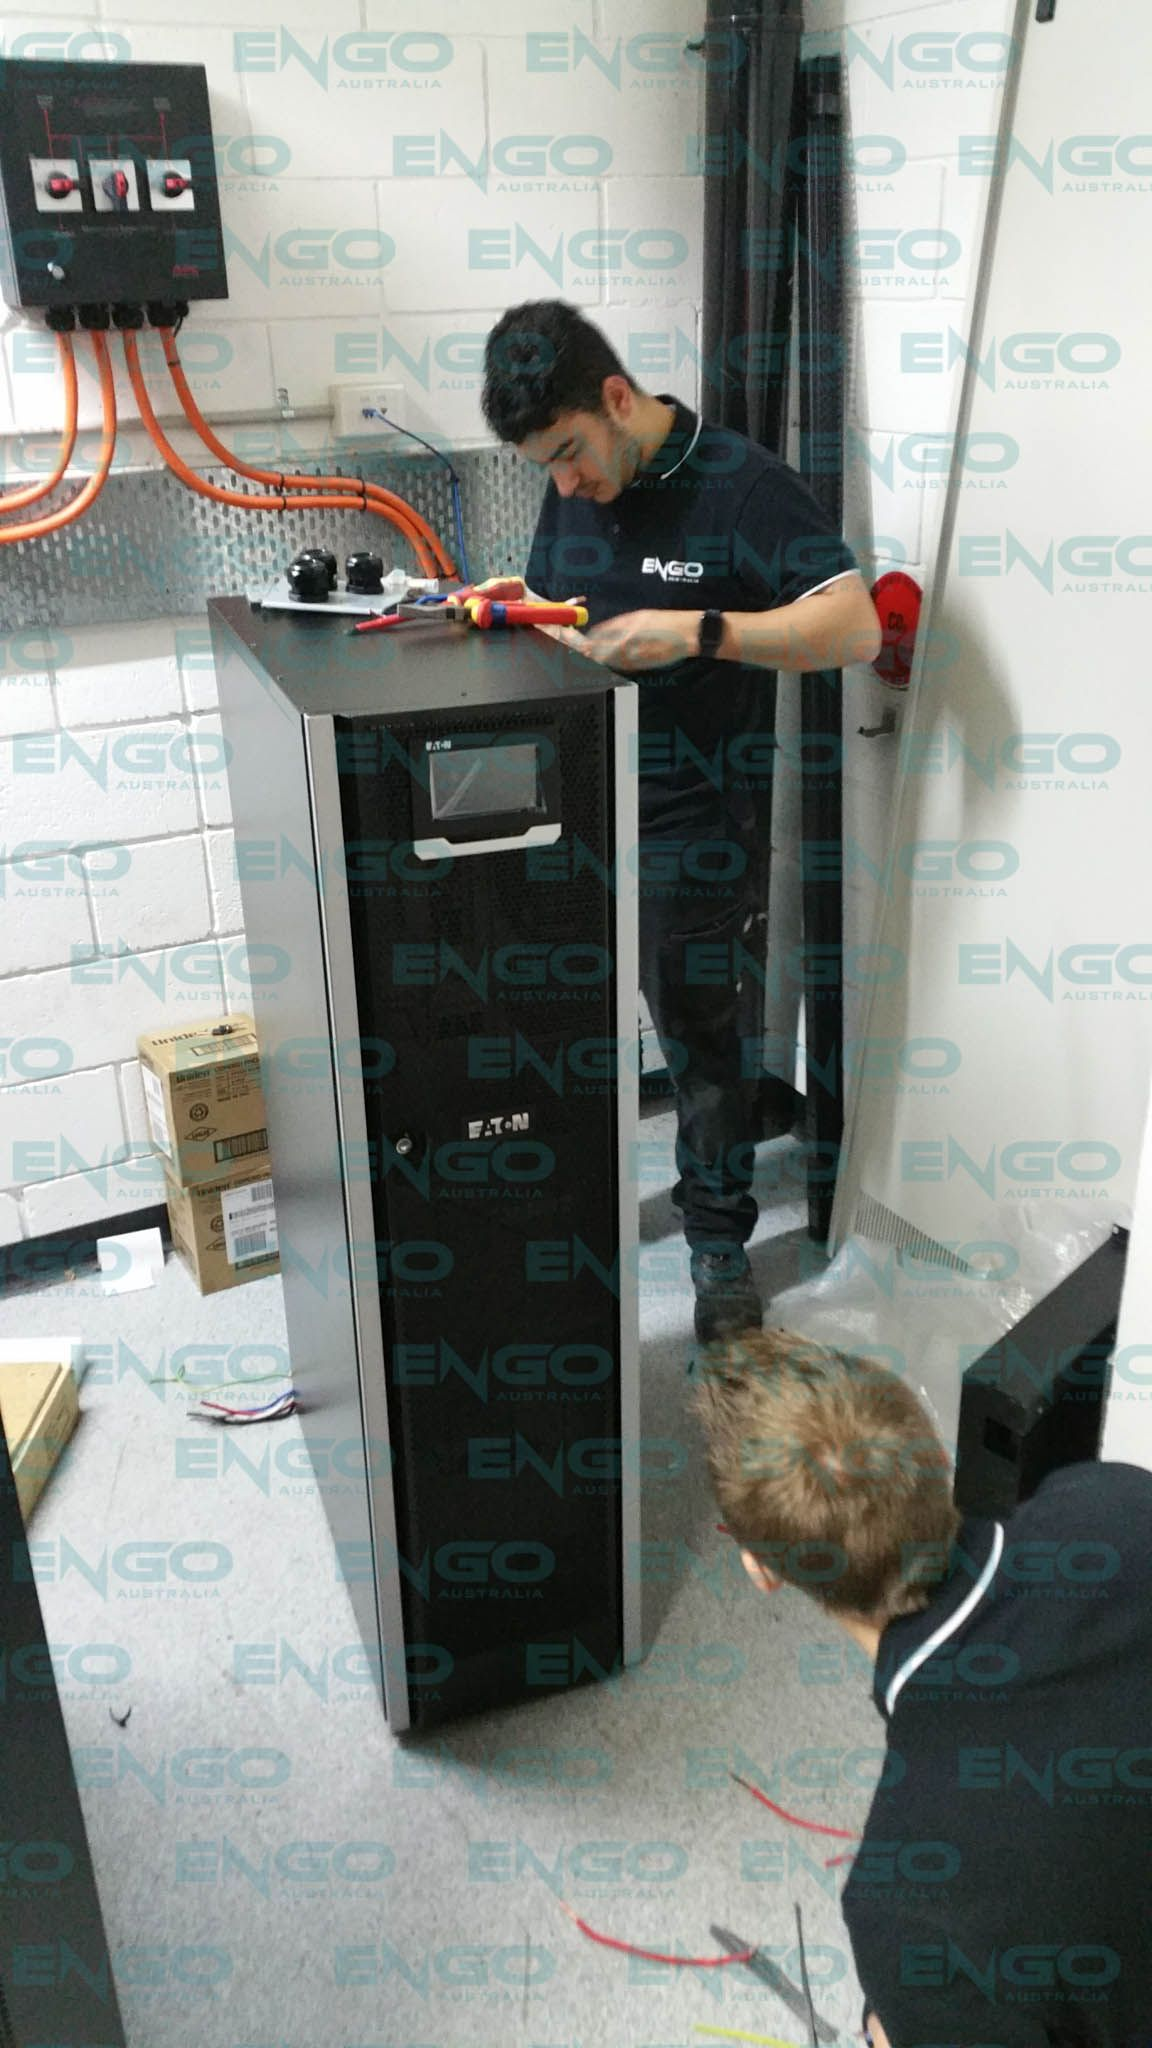 Ups Install Power Backup Engo Australia 1800 363 646 Our Experienced Ups Engineers Offer The Most Efficient And C Power Backup Installation Thermal Imaging